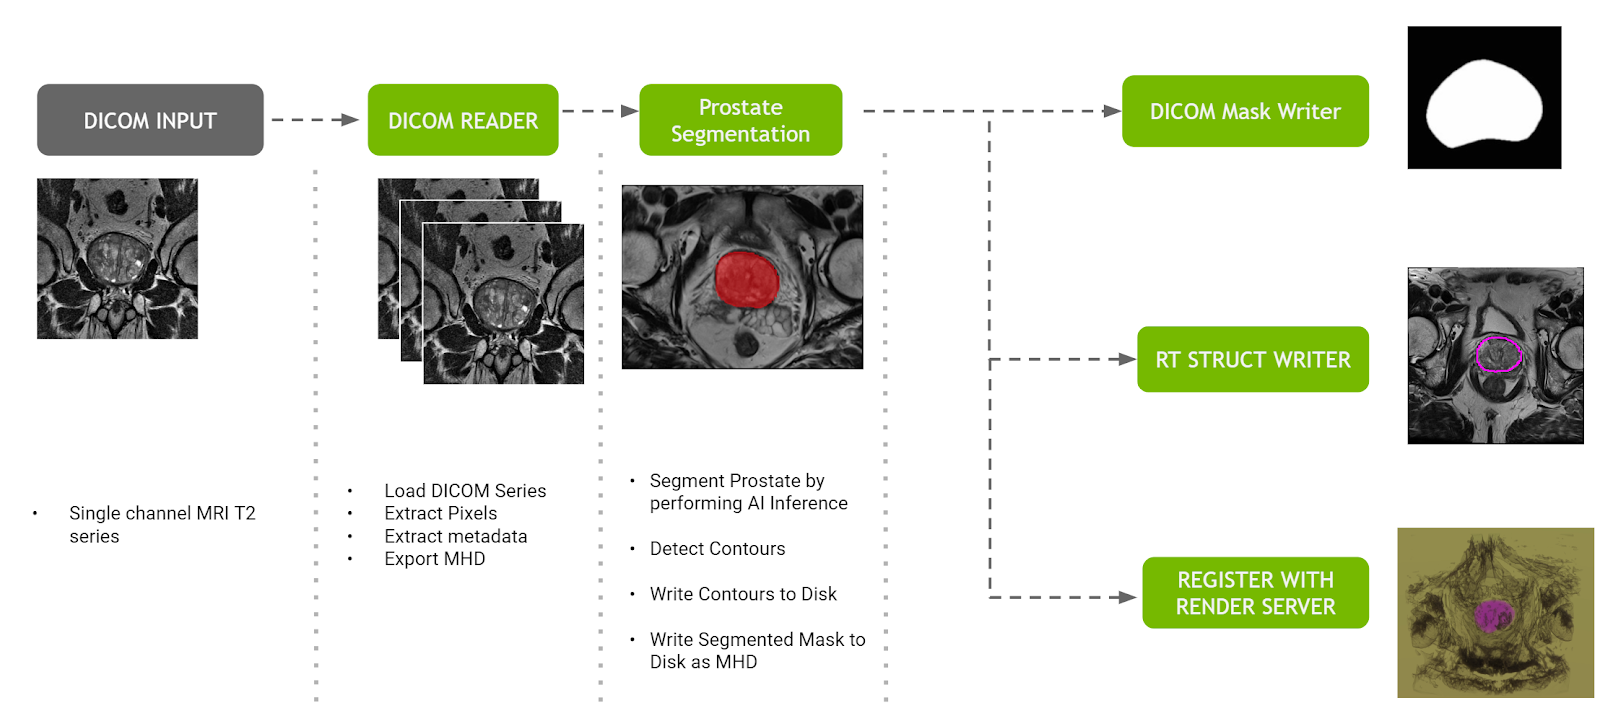 This image describes the prostate segmentation pipeline, which shows the steps of receiving DICOM, loading and extracting content from DICOM, creating the segmentation, and delivering the end result, including a DICOM mask output, a DICOM RT Struct output, and rendering using Clara Render Server.